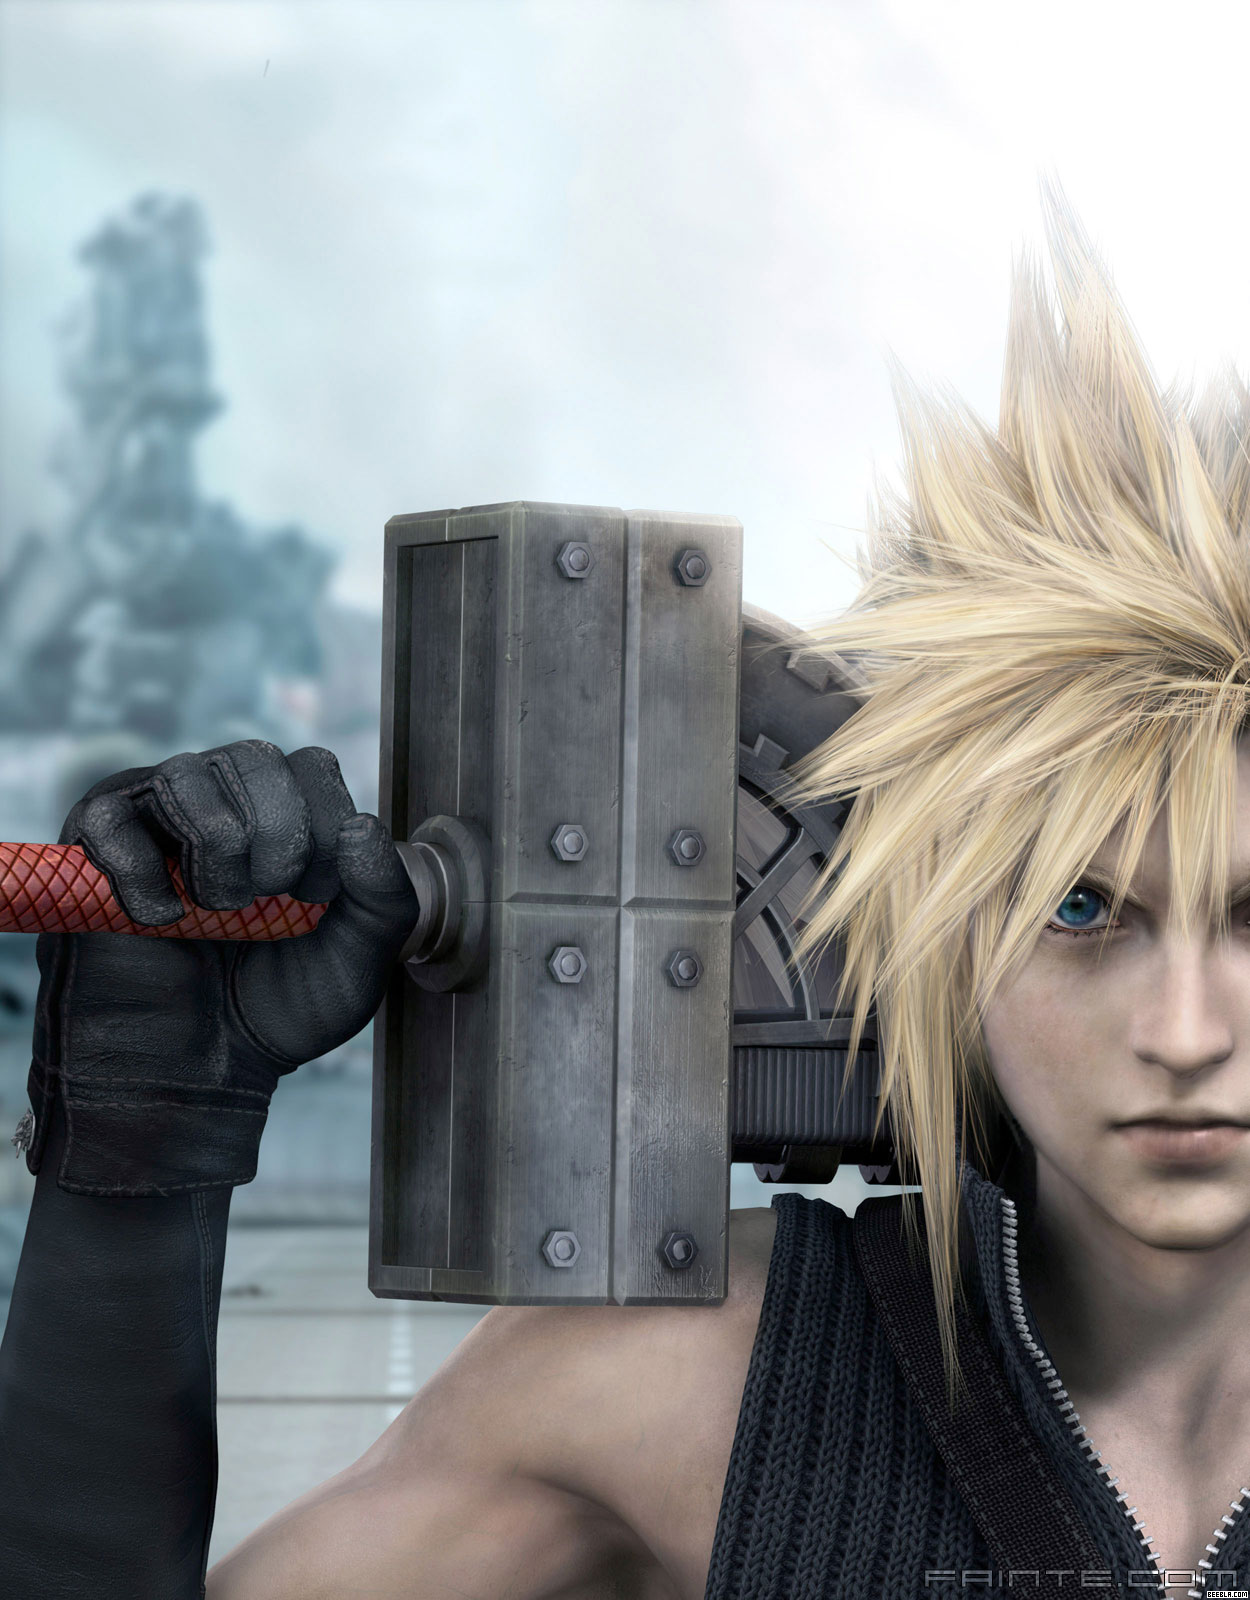 anime pictures final fantasy images and wallpapers. Black Bedroom Furniture Sets. Home Design Ideas